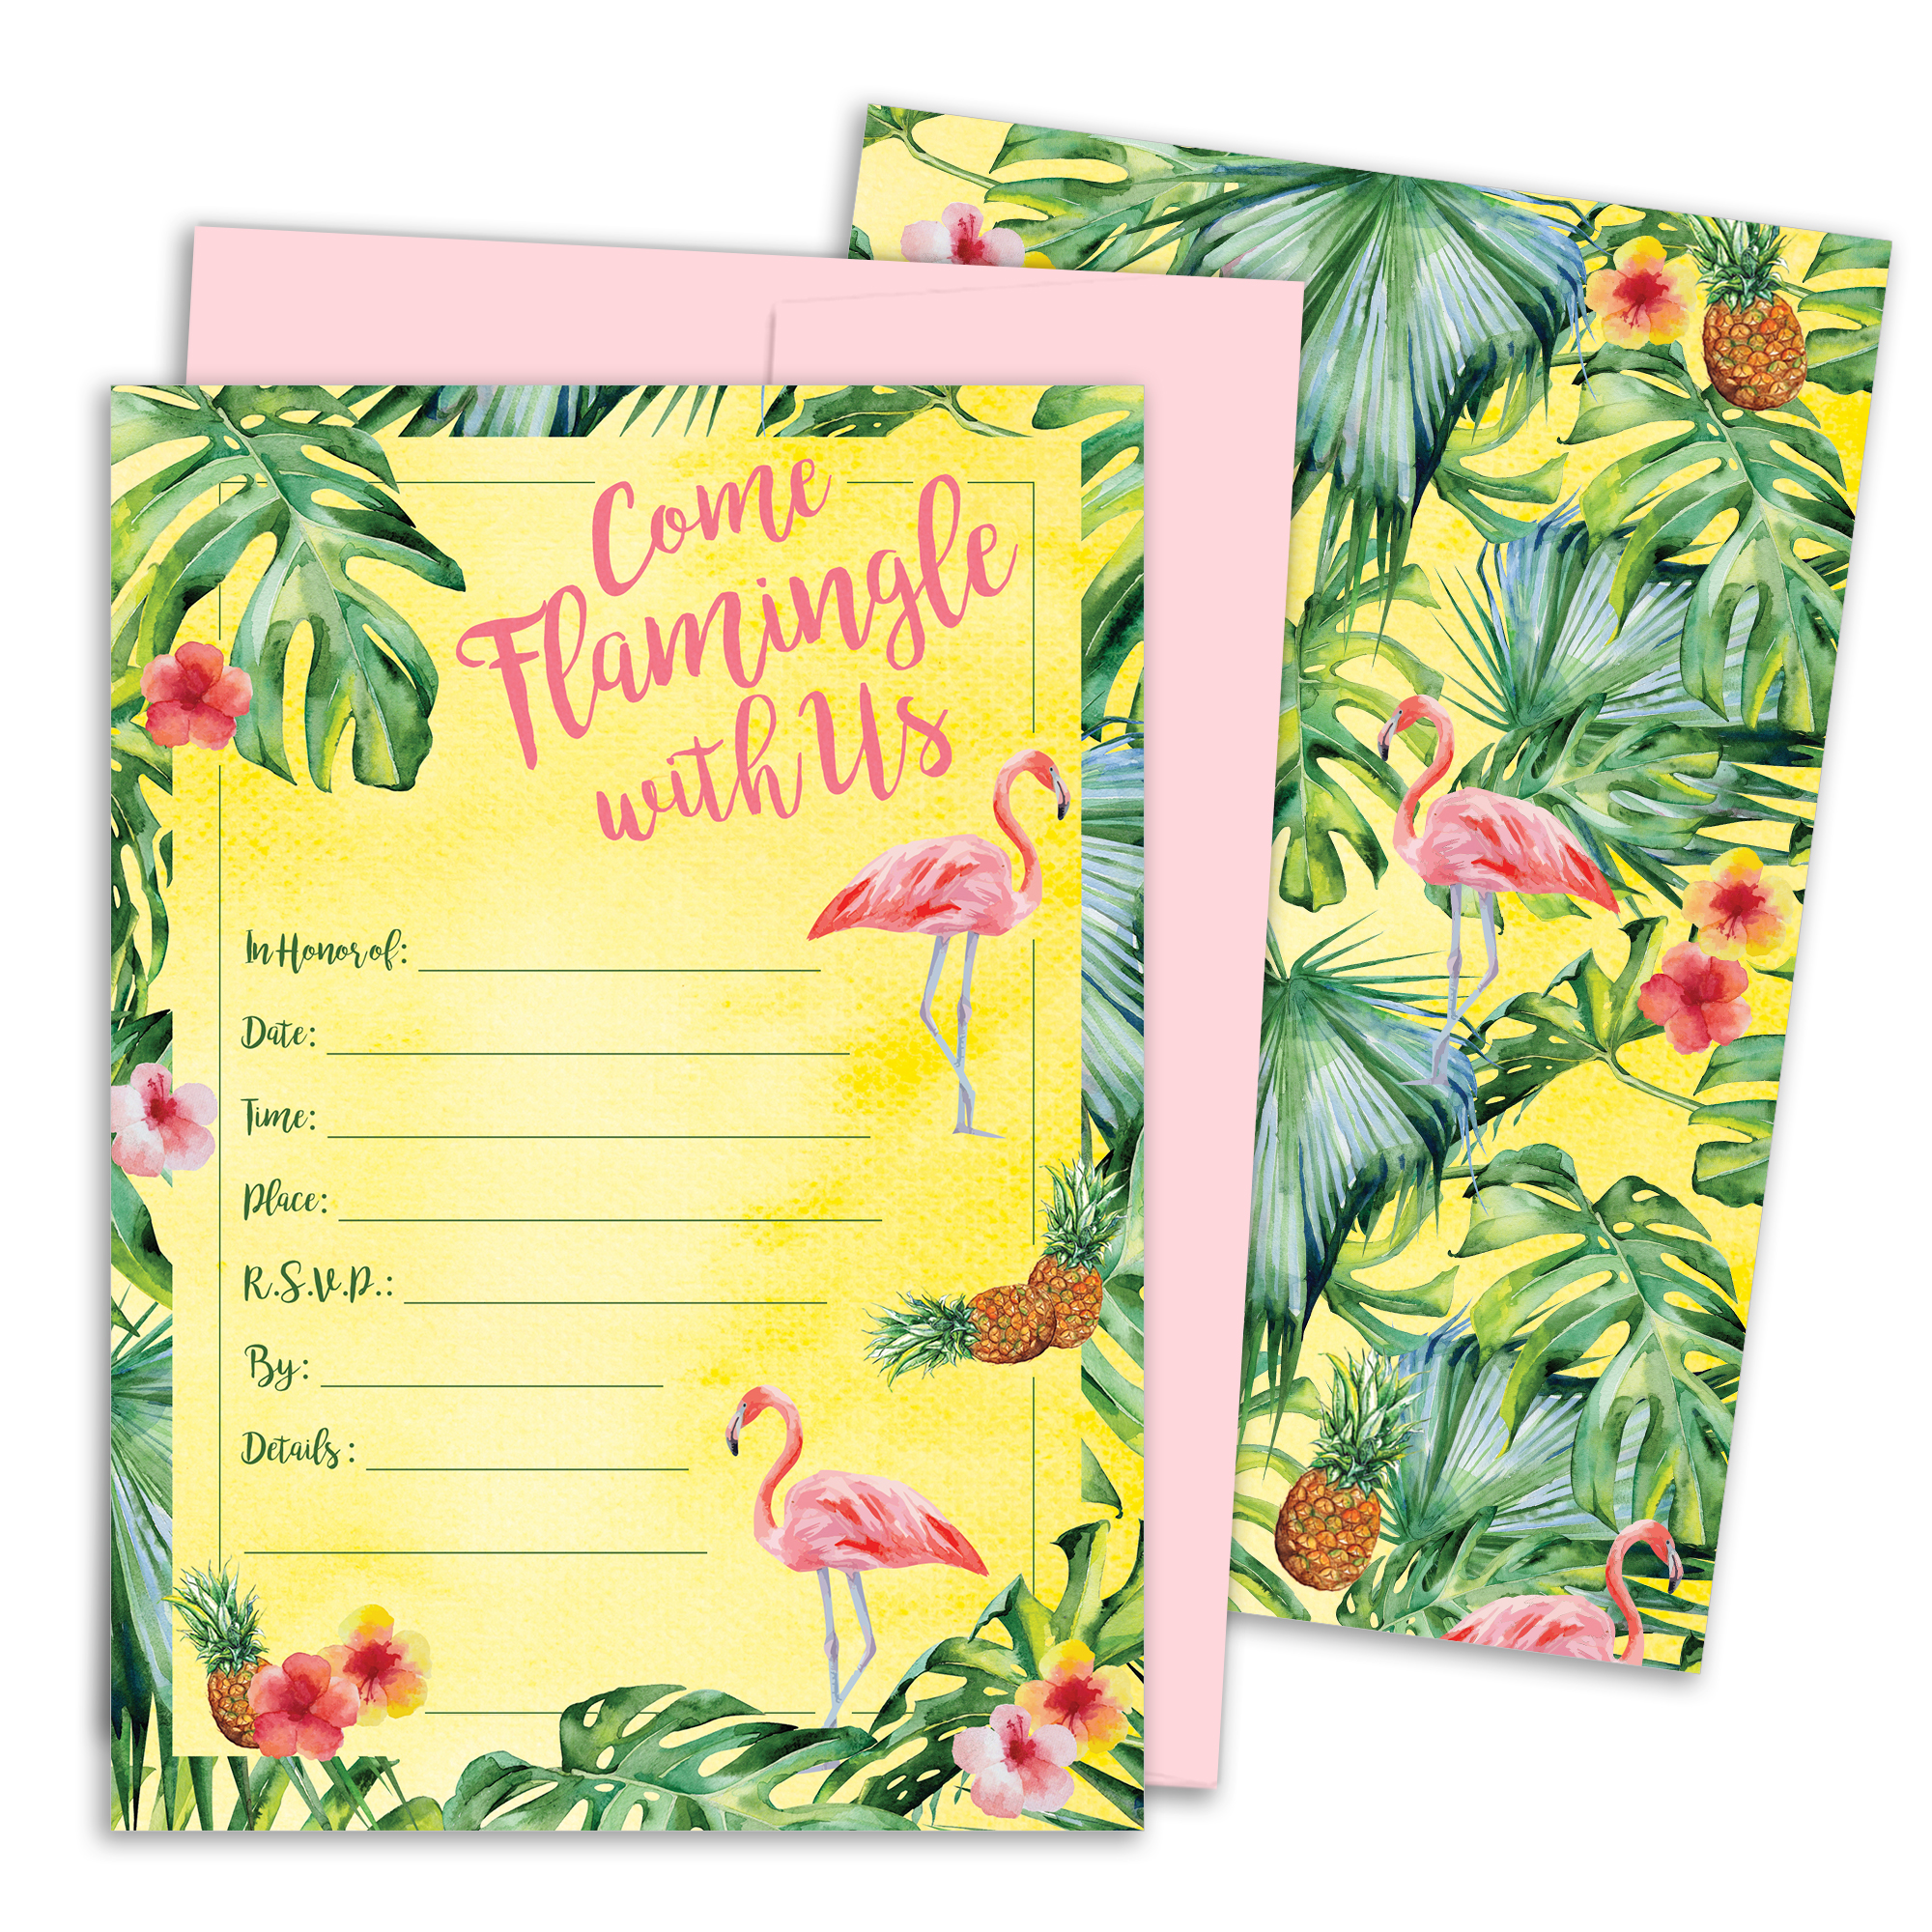 Tropical Aloha Flamingo Pineapple Party Invitations with Envelopes, 25 Count